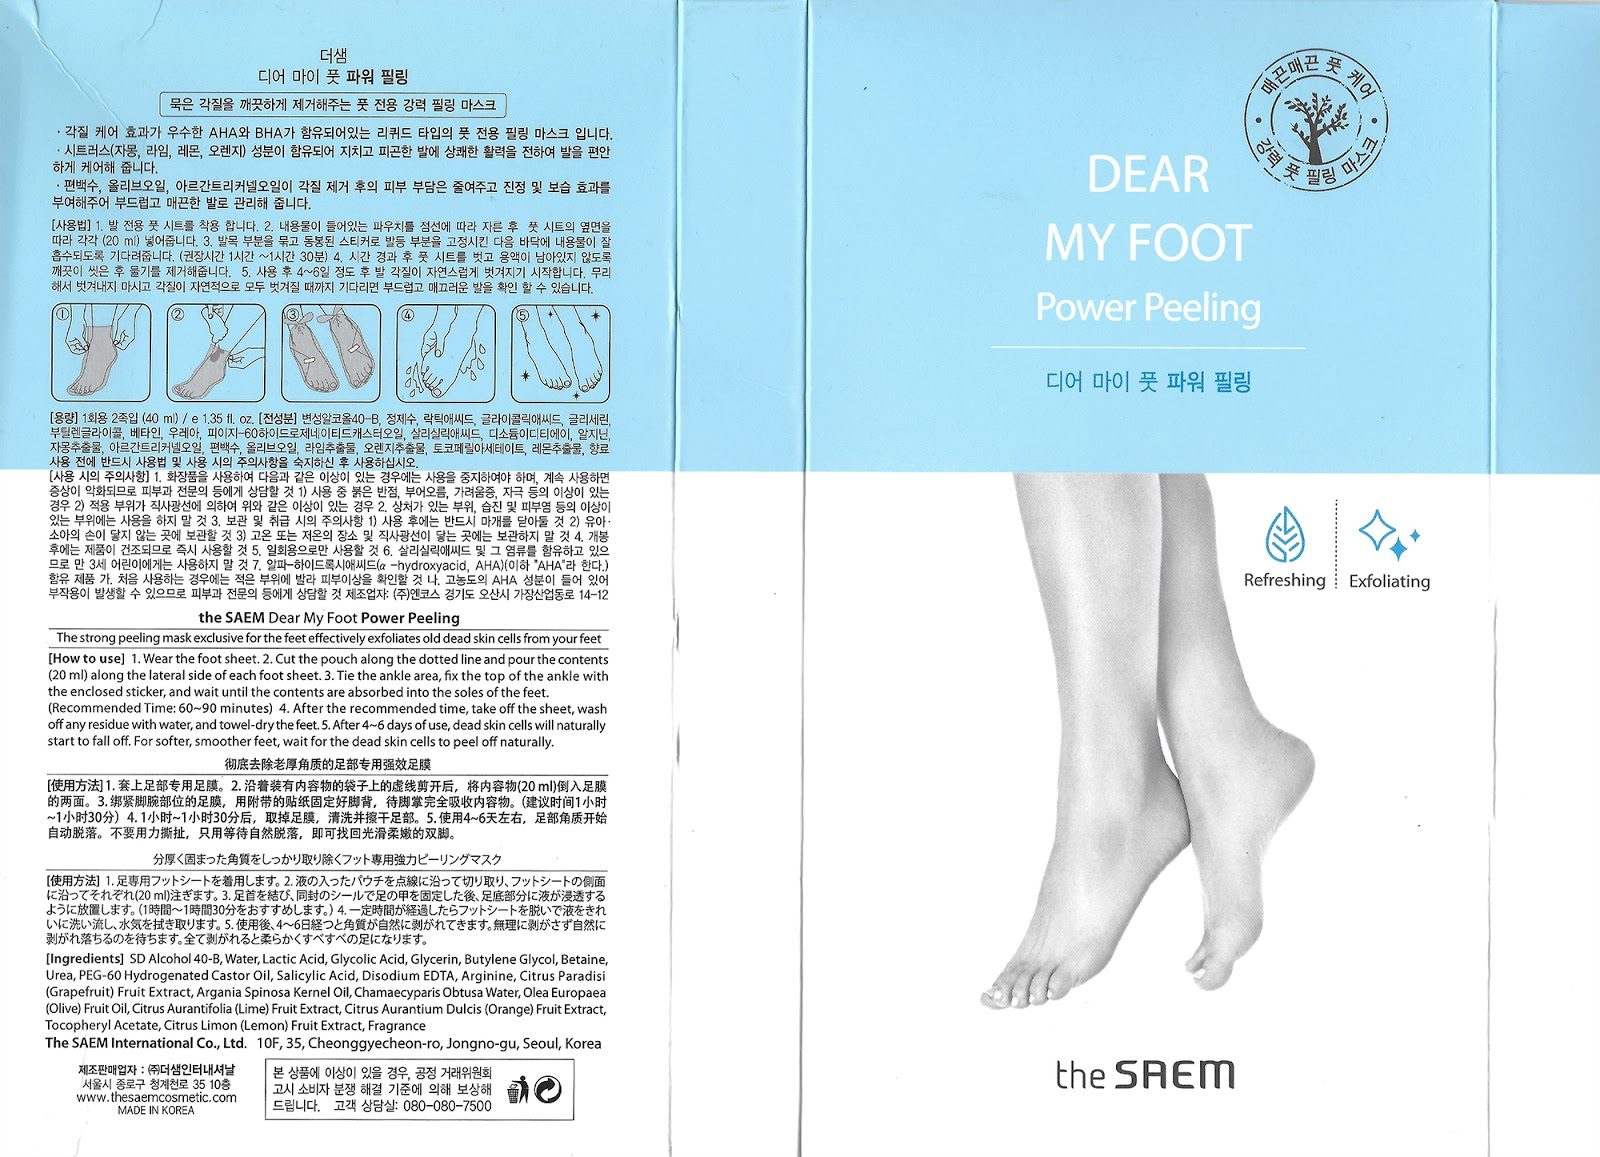 lavlilacs the SAEM Dear My Foot Power Peeling packaging - Korean and English ingredients, description, and directions